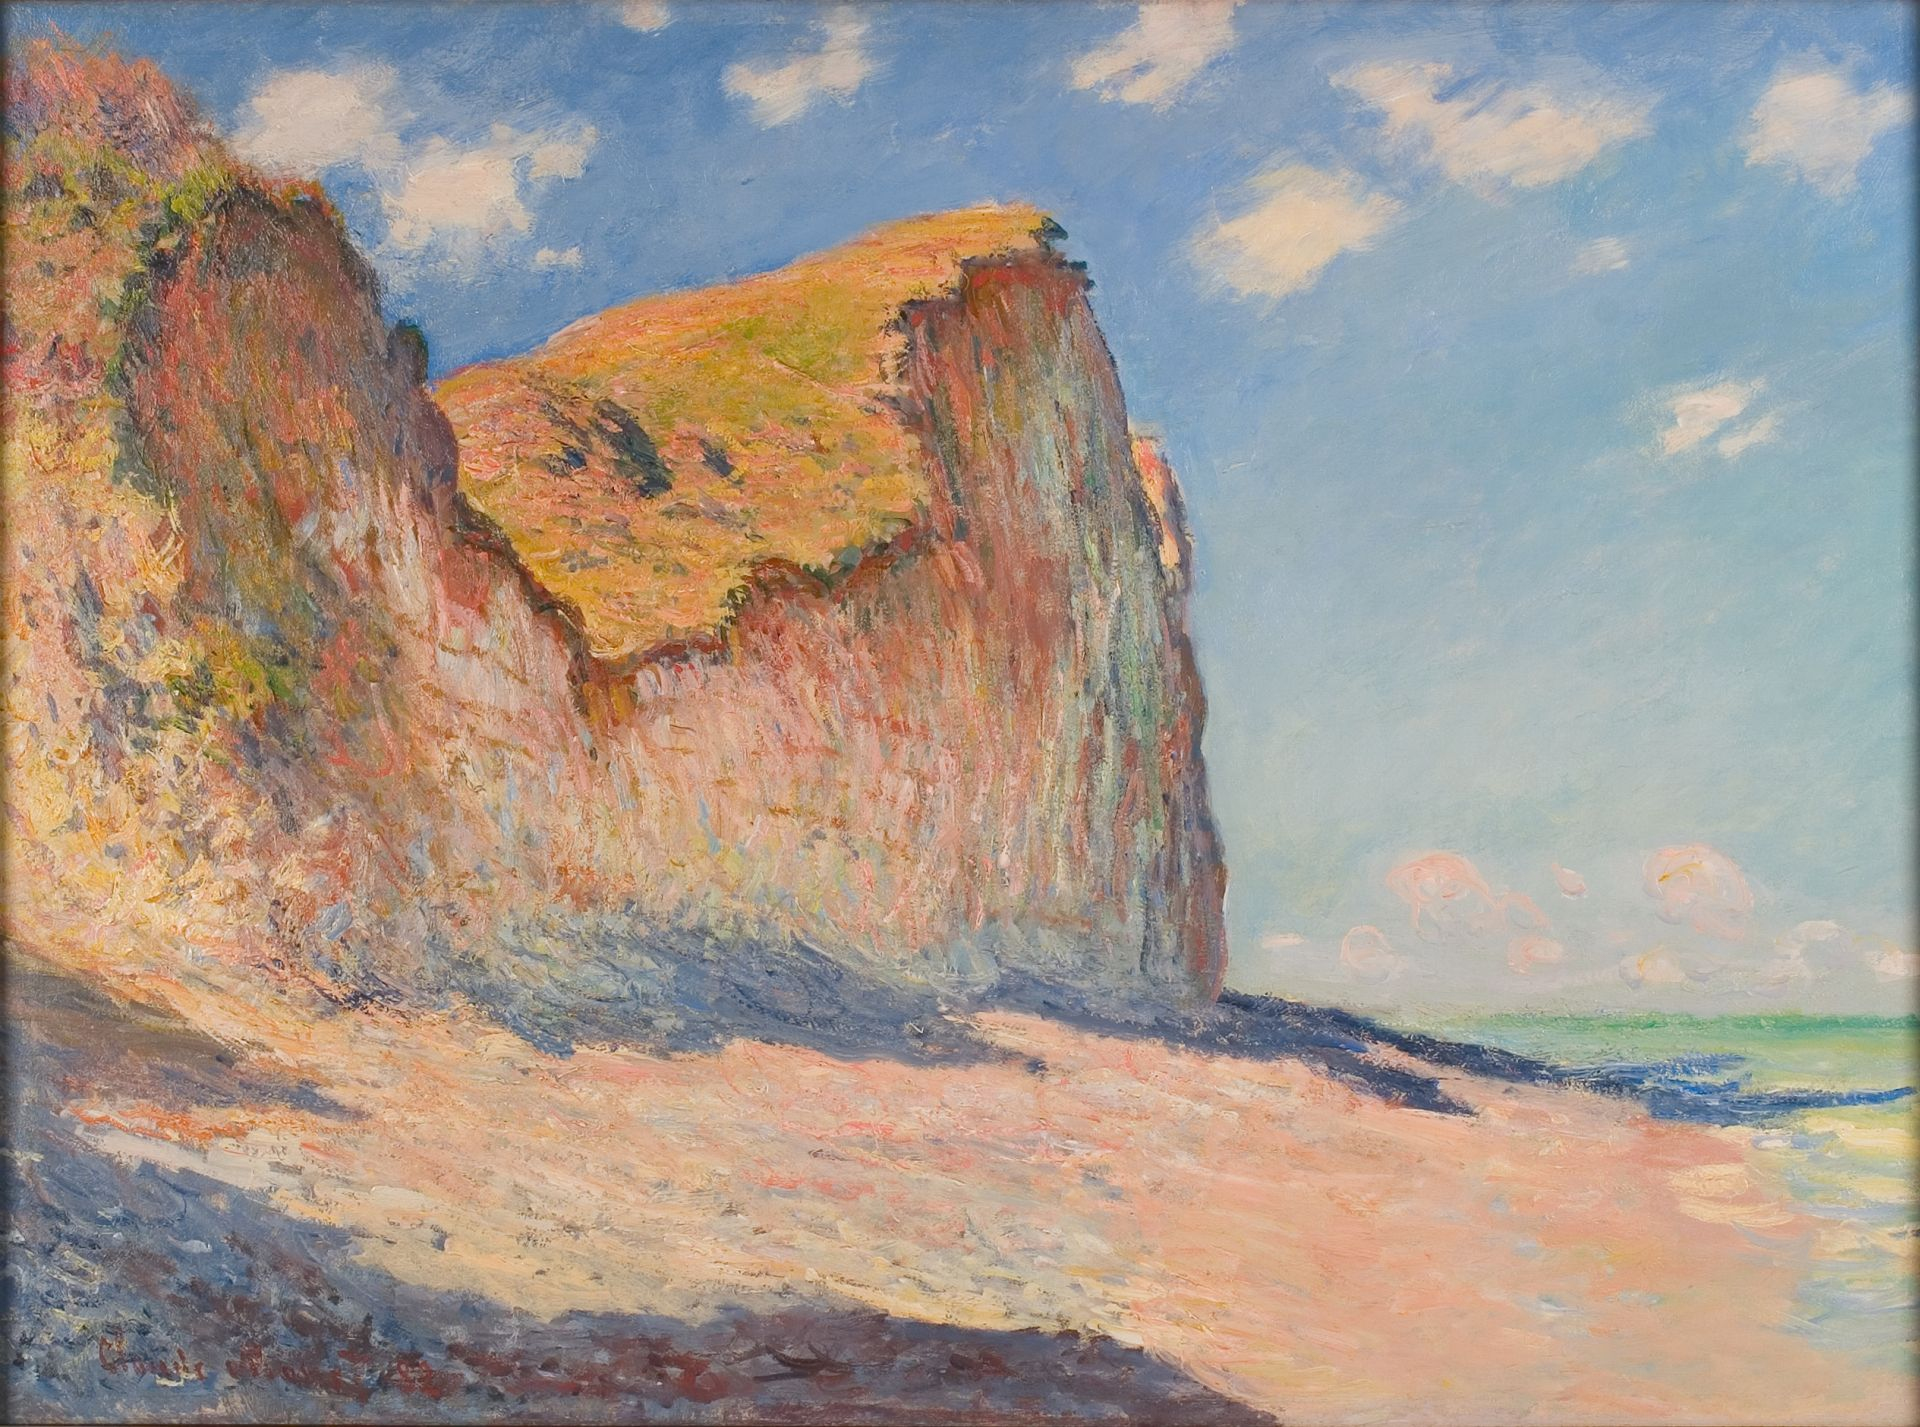 Impressionist Painting By Artist Pullman